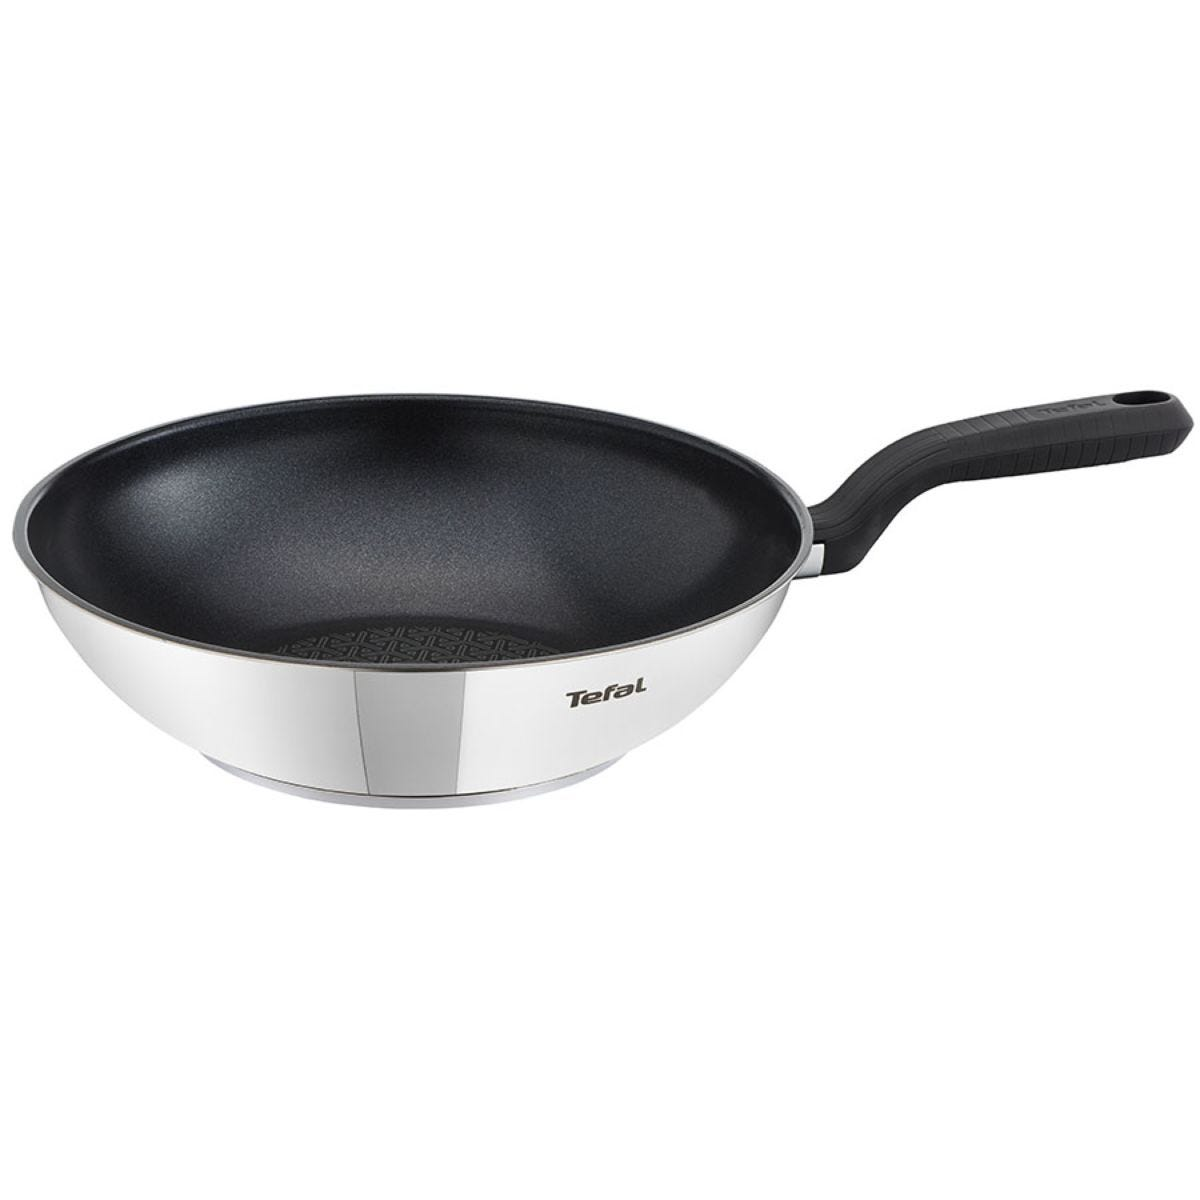 Tefal Comfort Max Thermo-Spot 28cm Wok